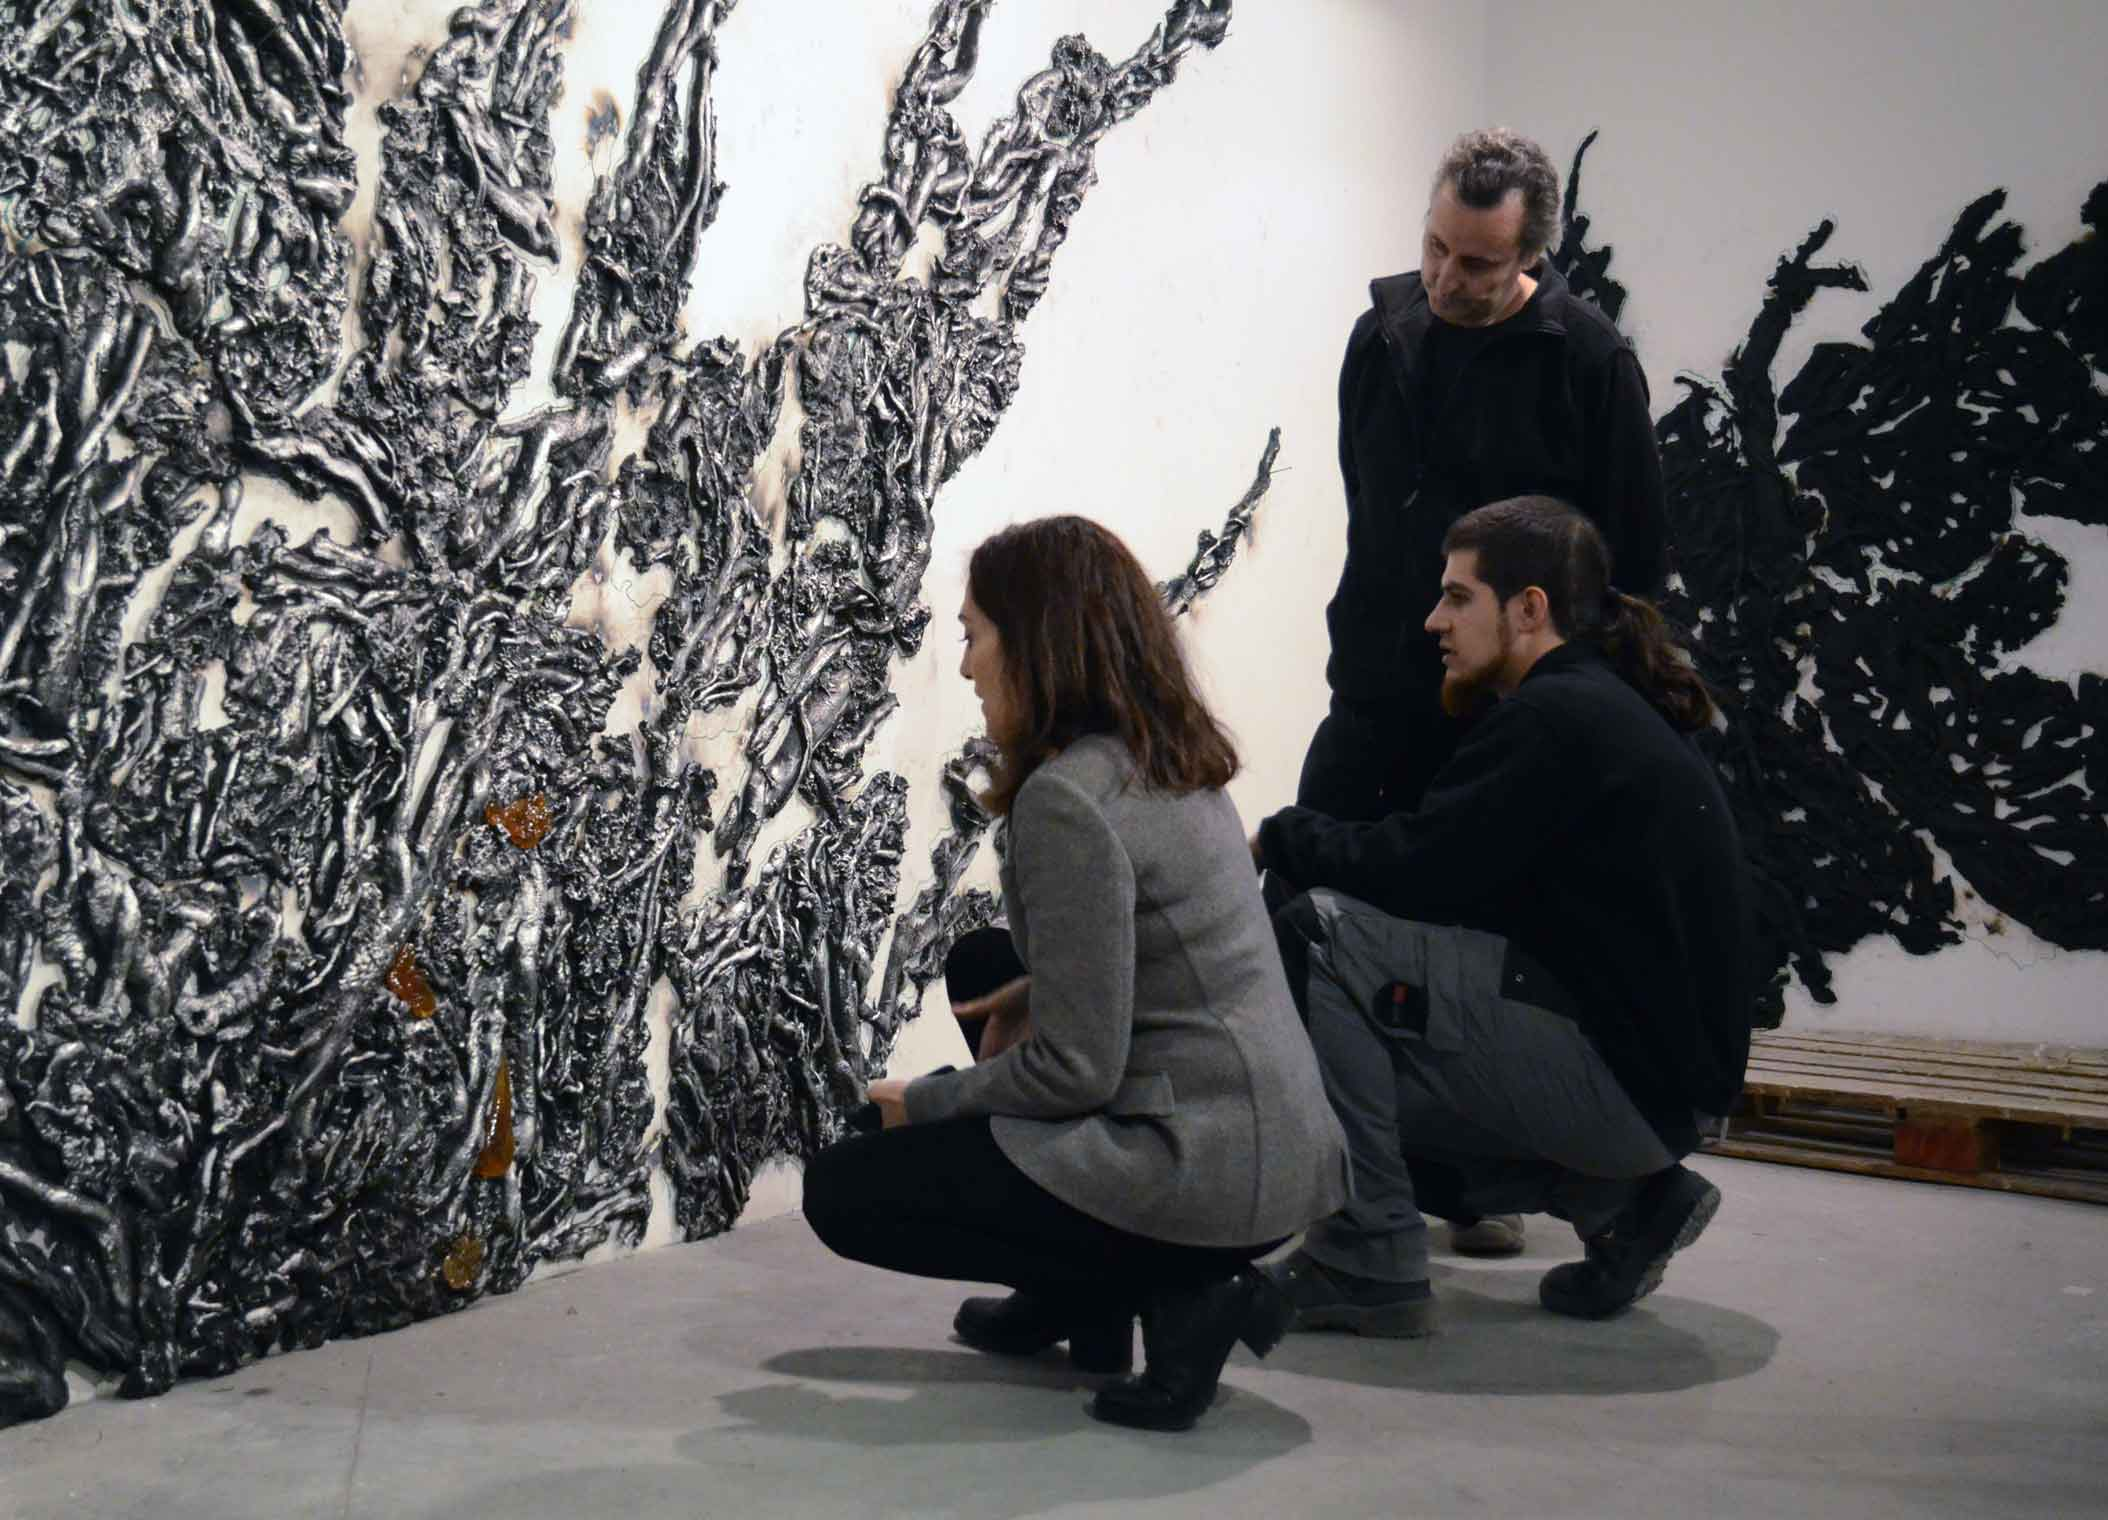 Cristina Iglesias at Alfa Arte, working on the sculptural project ENTWINED, in aluminum and resin.